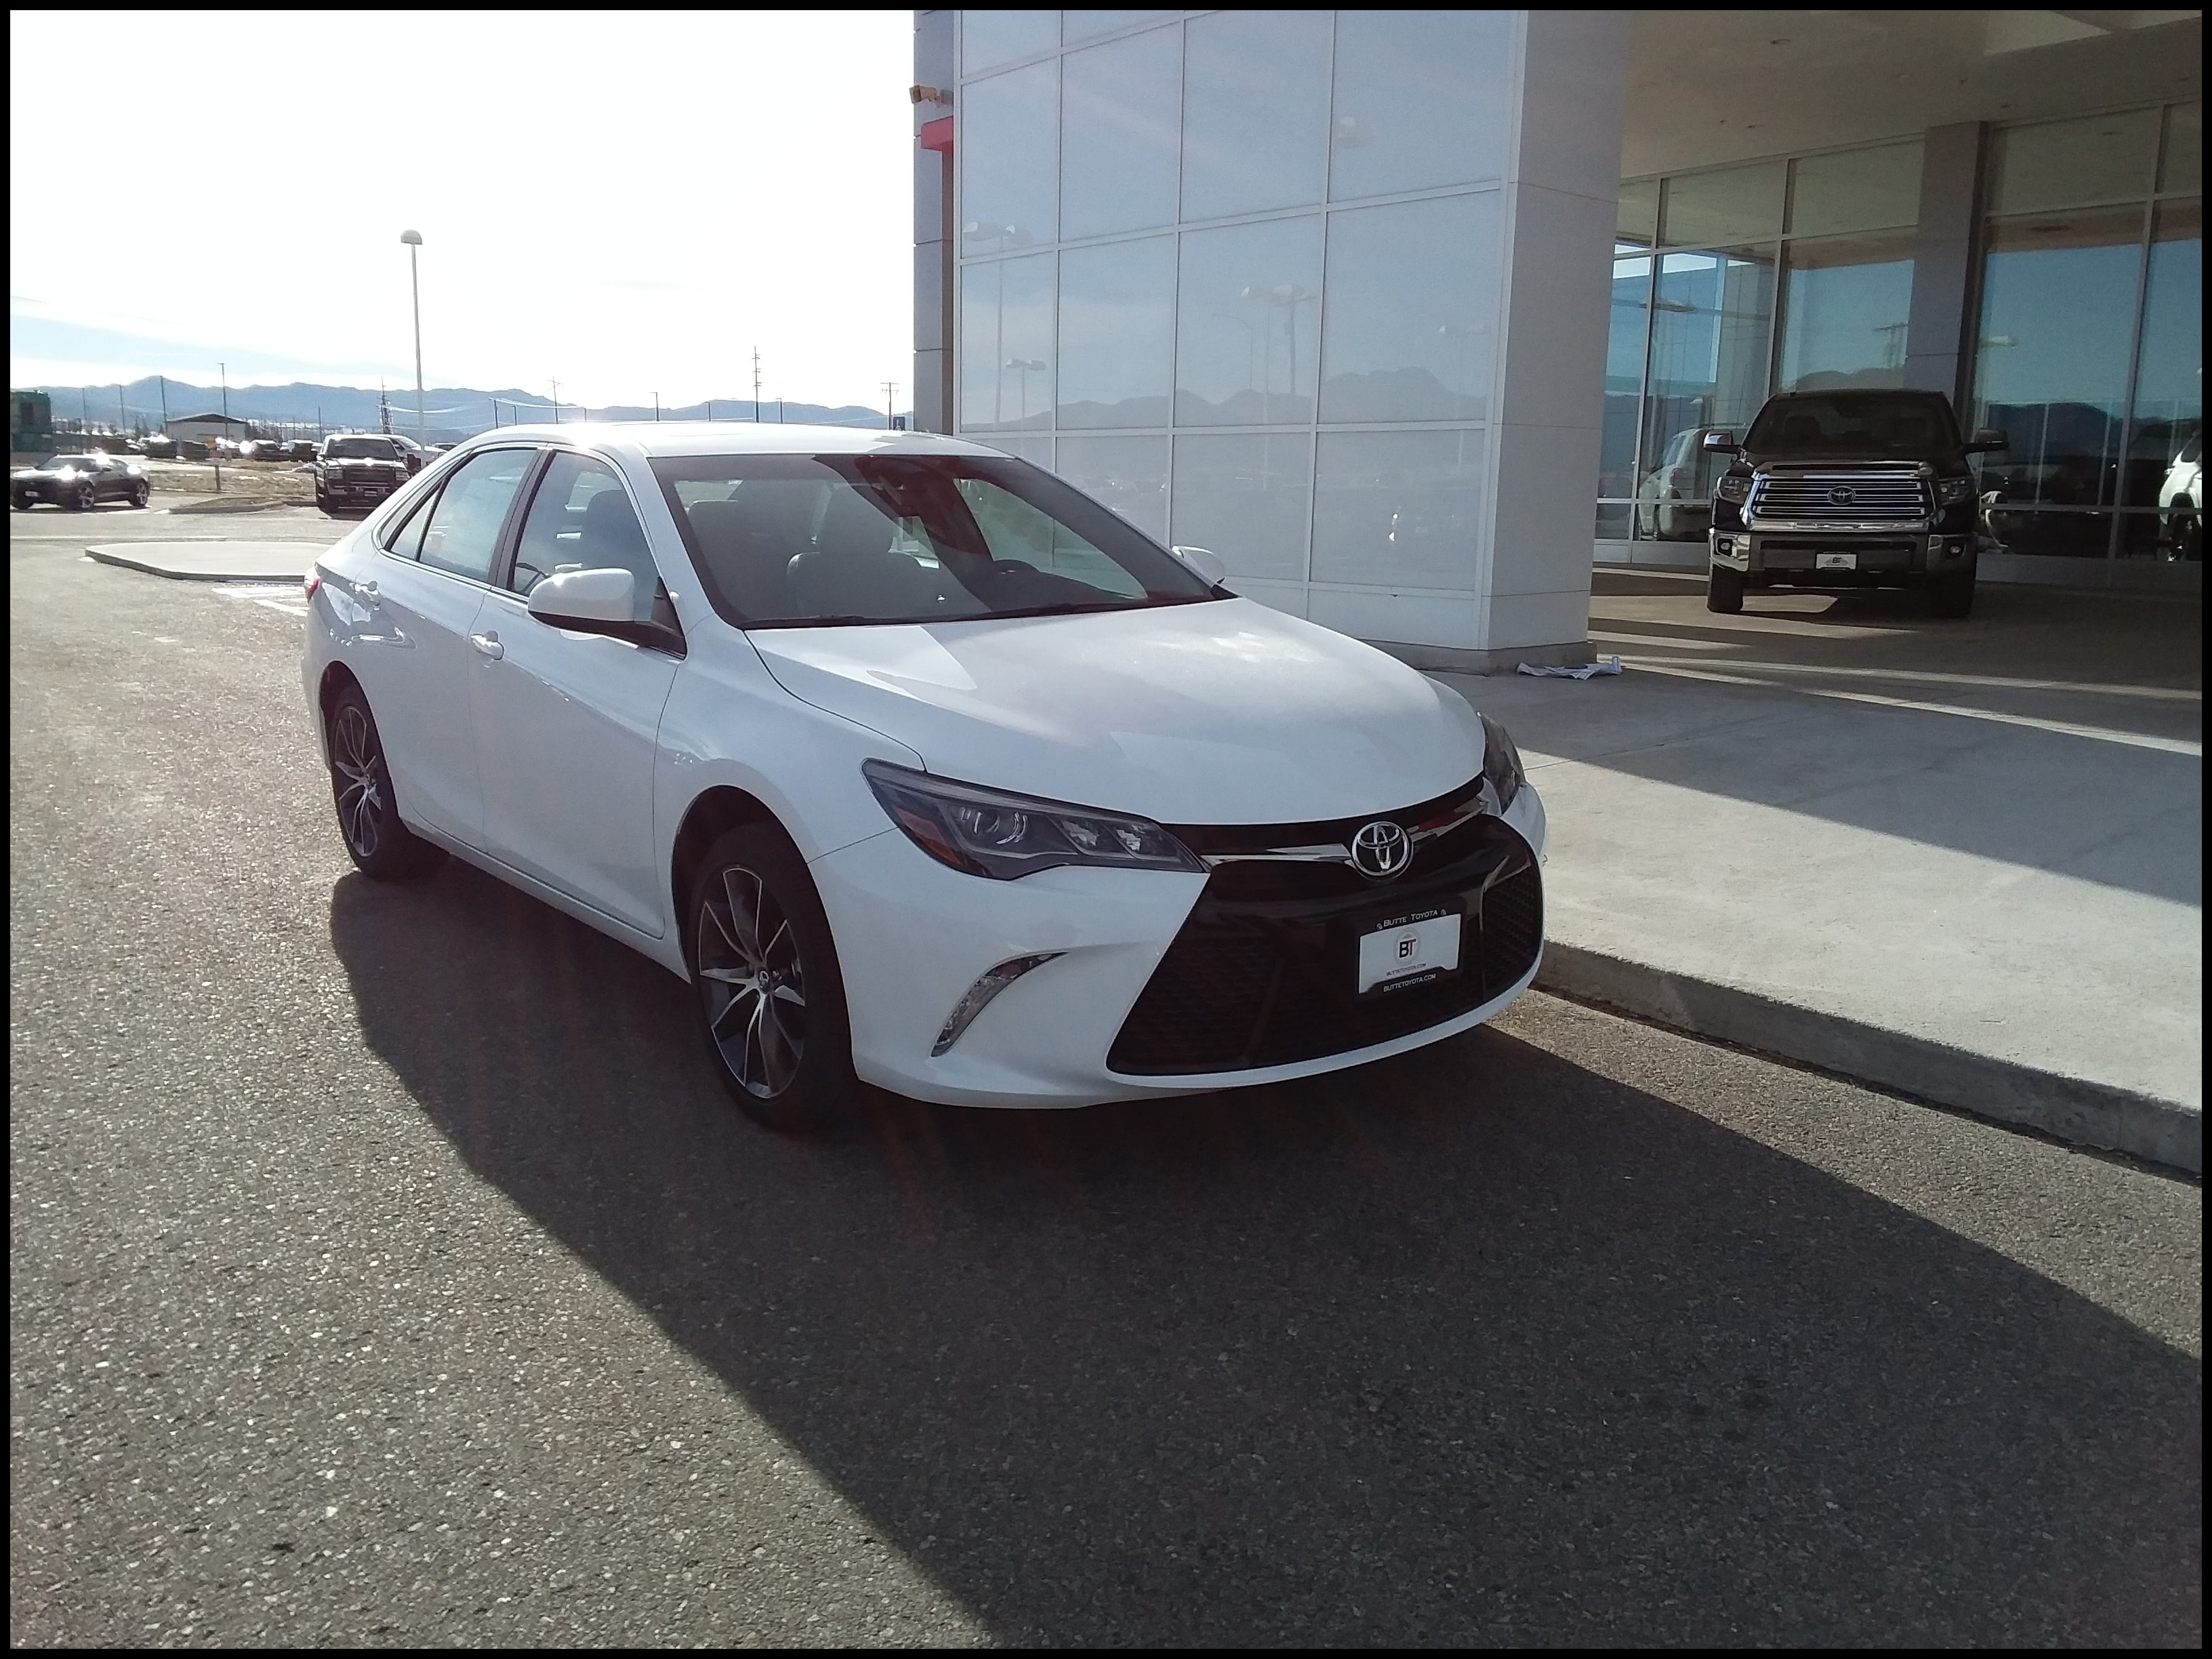 News butte toyota New Review